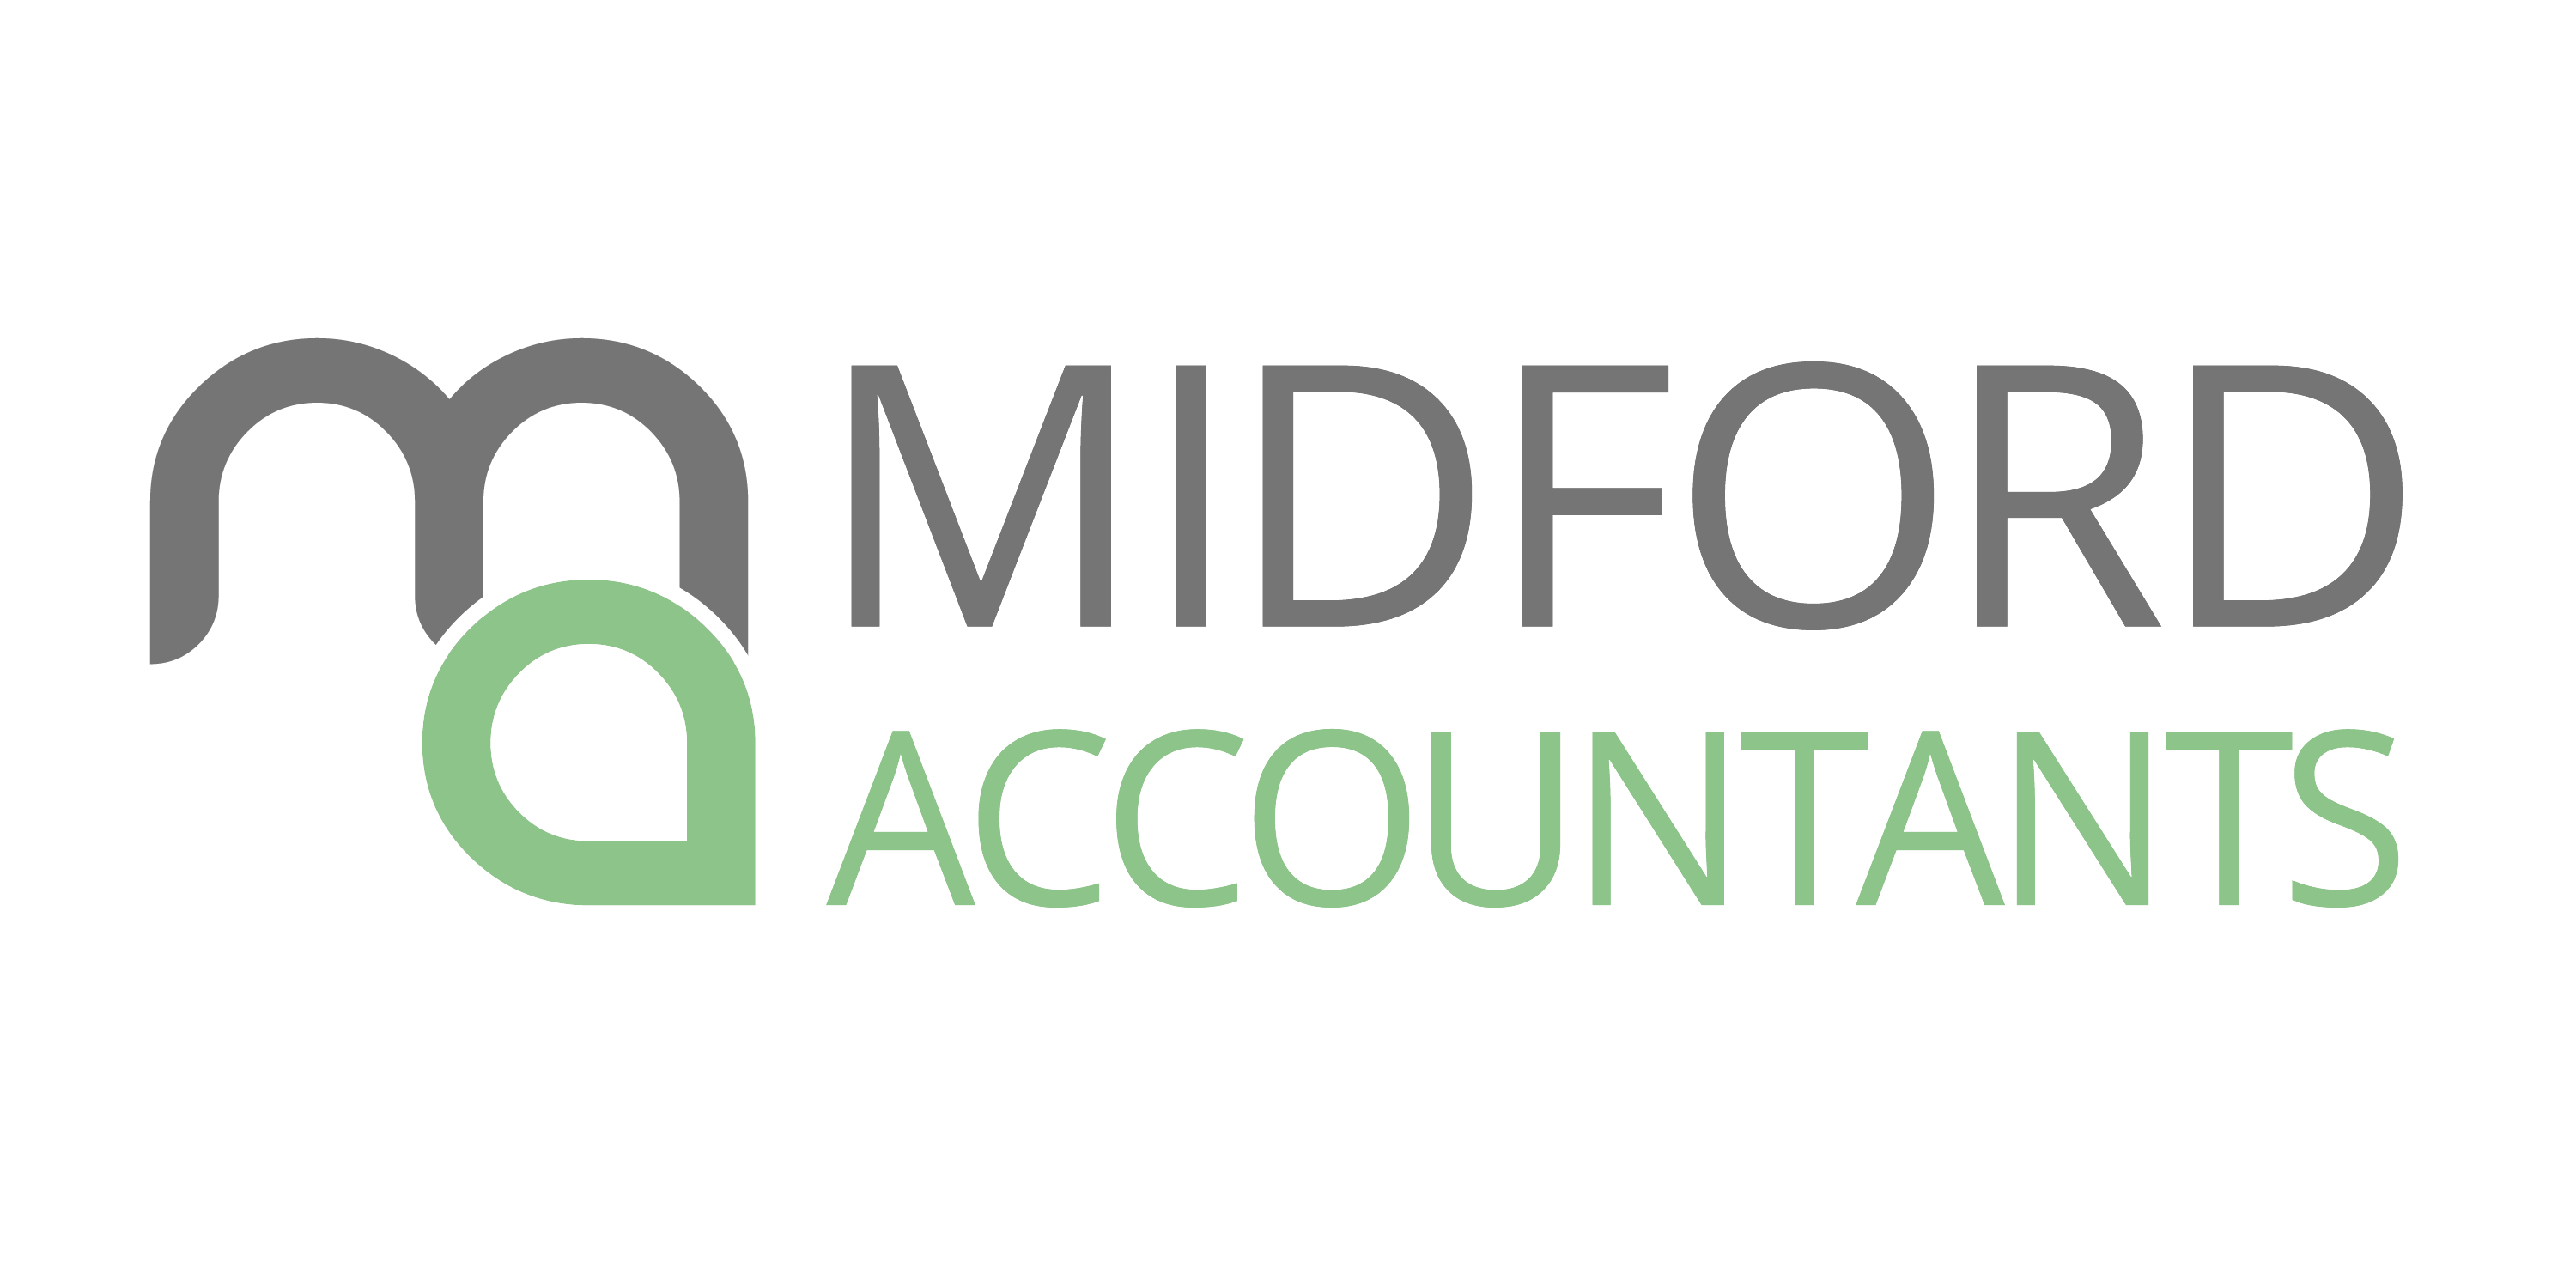 Midford Accountants Ltd